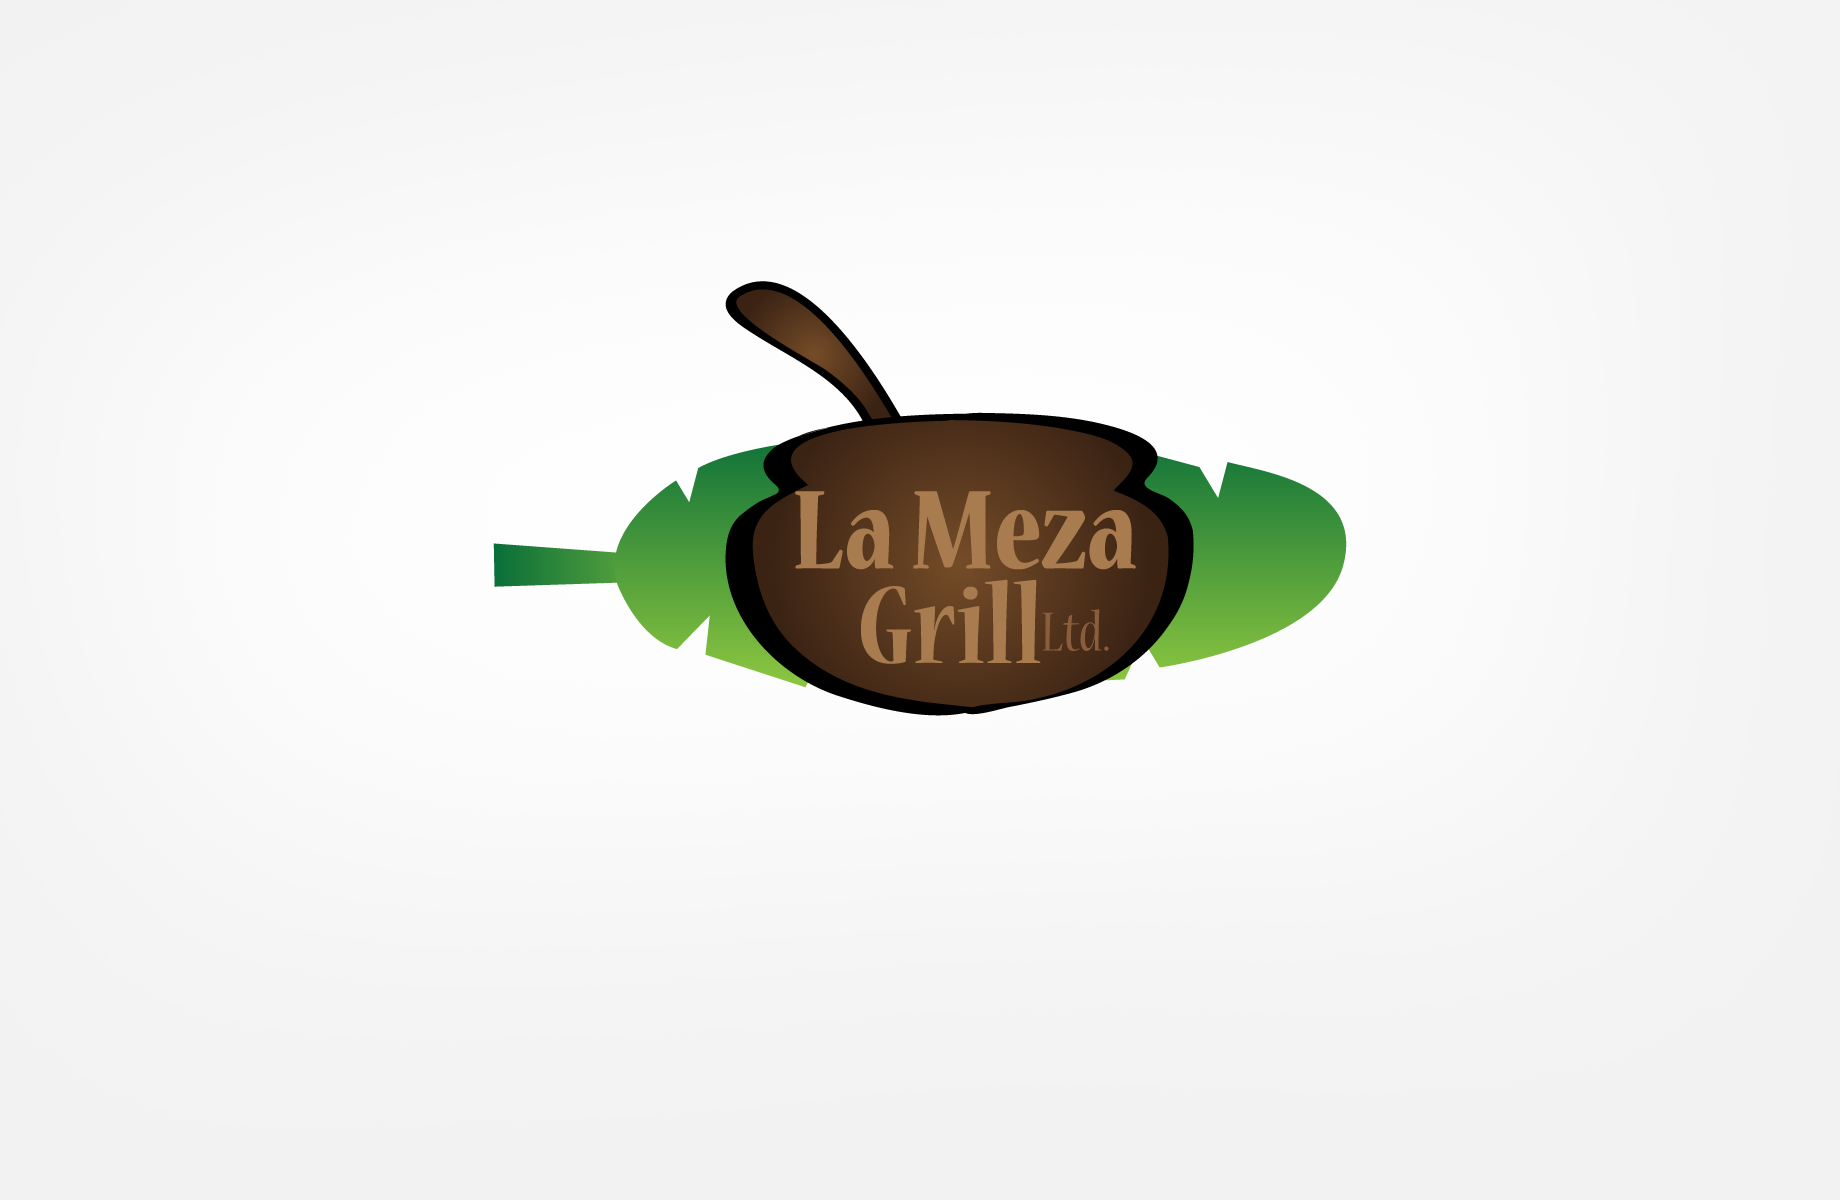 Logo Design by Jan Chua - Entry No. 44 in the Logo Design Contest Inspiring Logo Design for La Meza Grill Ltd..